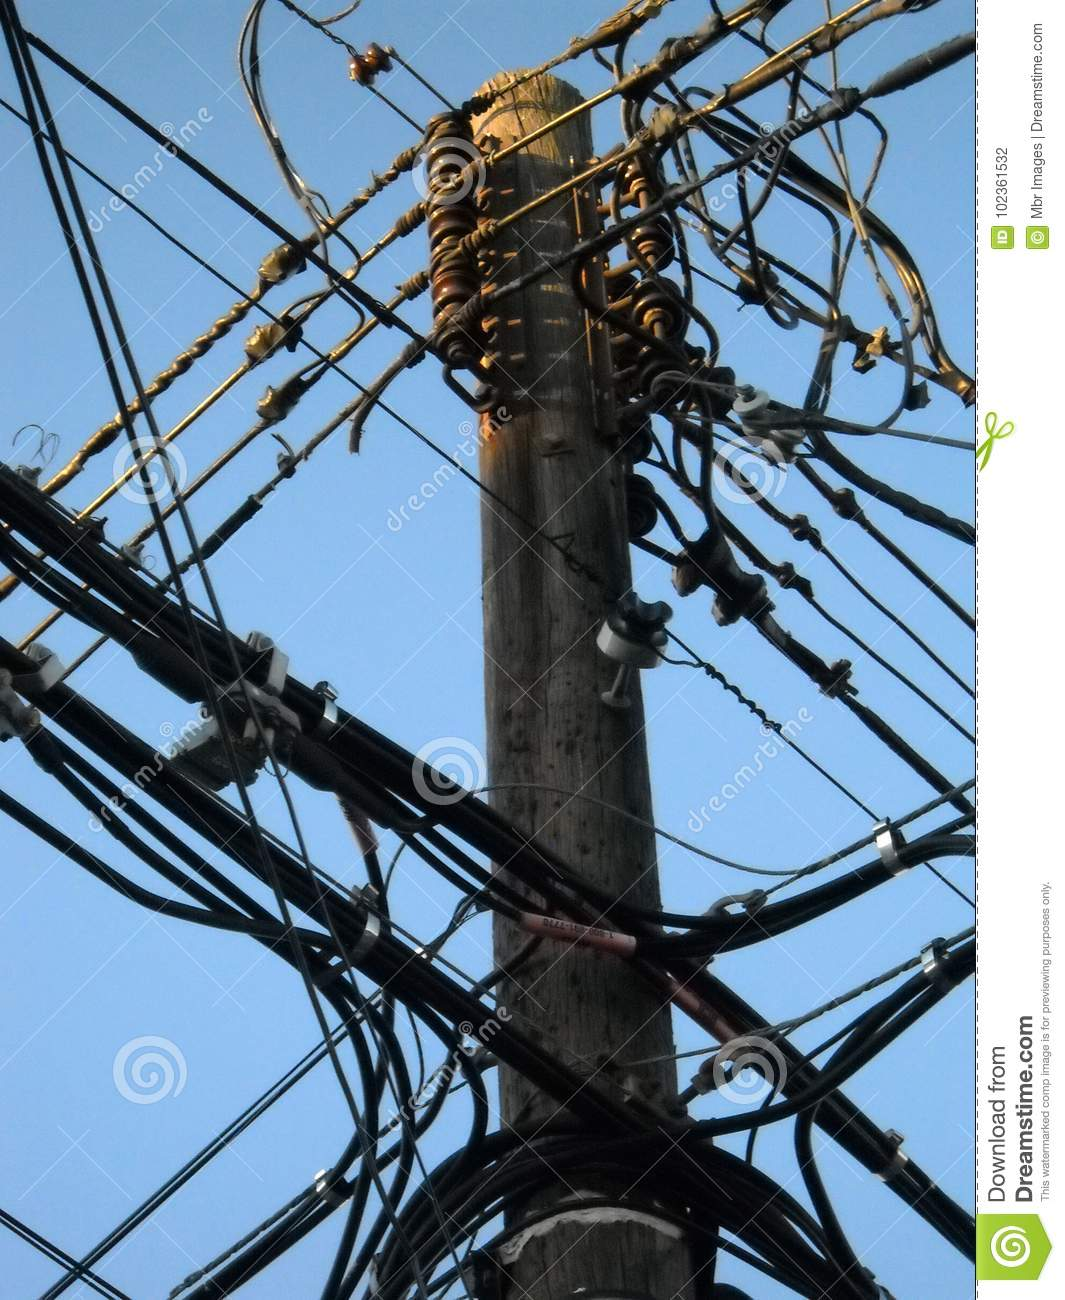 Wiring New Light Wooden Pole Electrical Wires Editorial Photography Image Of On Queens York Street